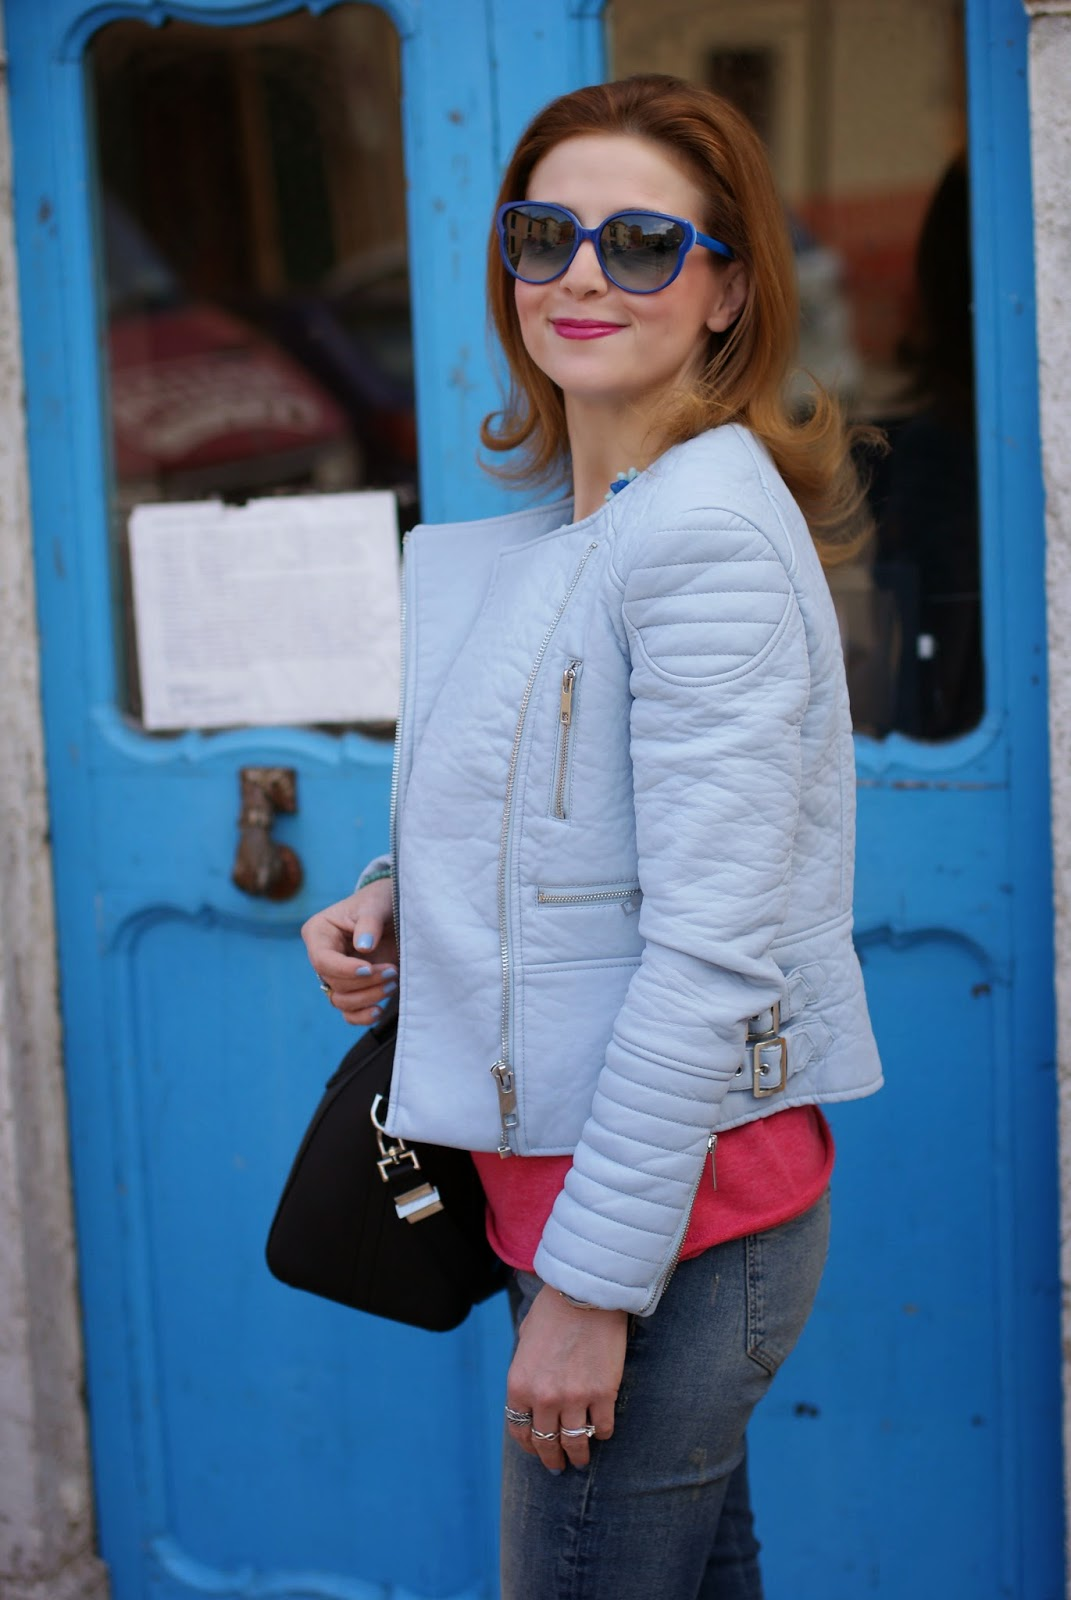 Zara pastel blue faux leather biker jacket, Marc by Marc Jacobs blue sunglasses, Fashion and Cookies, fashion blogger